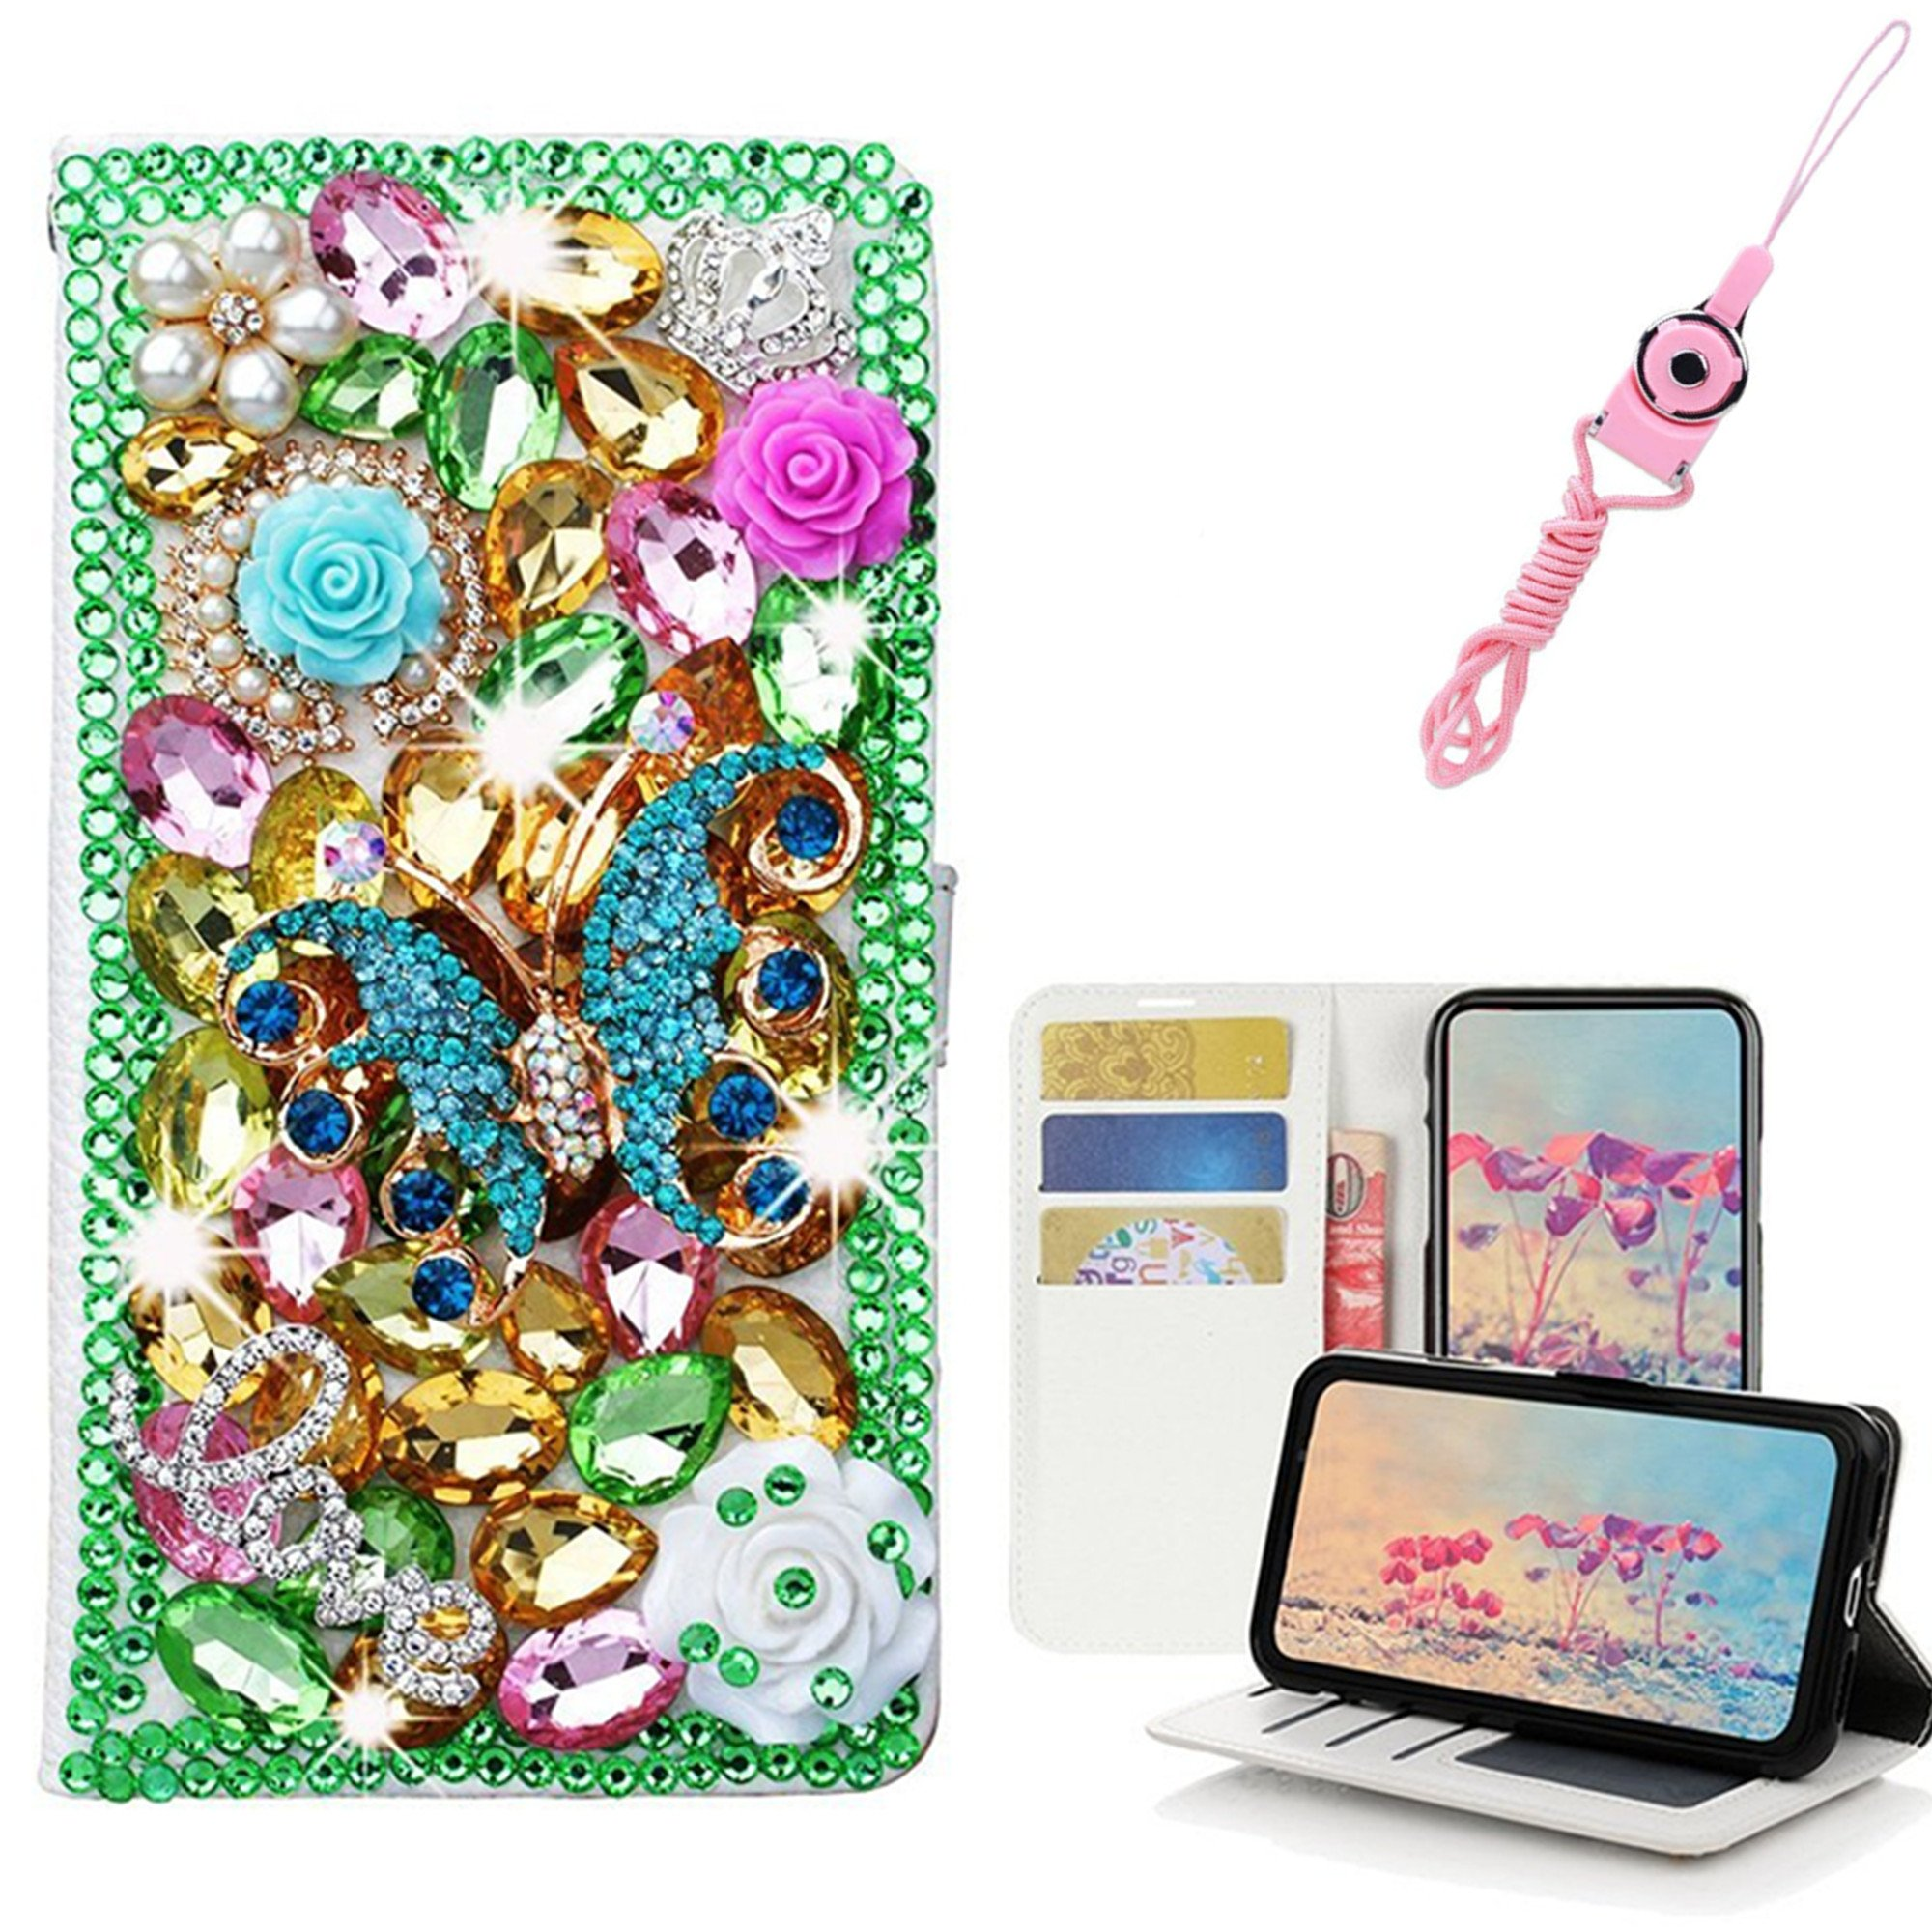 EVTECH ZTE Blade Z Max Case with Lanyard Neck Strap, [Stand Feature] Butterfly Crystal Wallet Case Premium [Bling Luxury] Leather Flip Cover [Card Slots] For ZTE Blade Z Max Z982/Sequoia